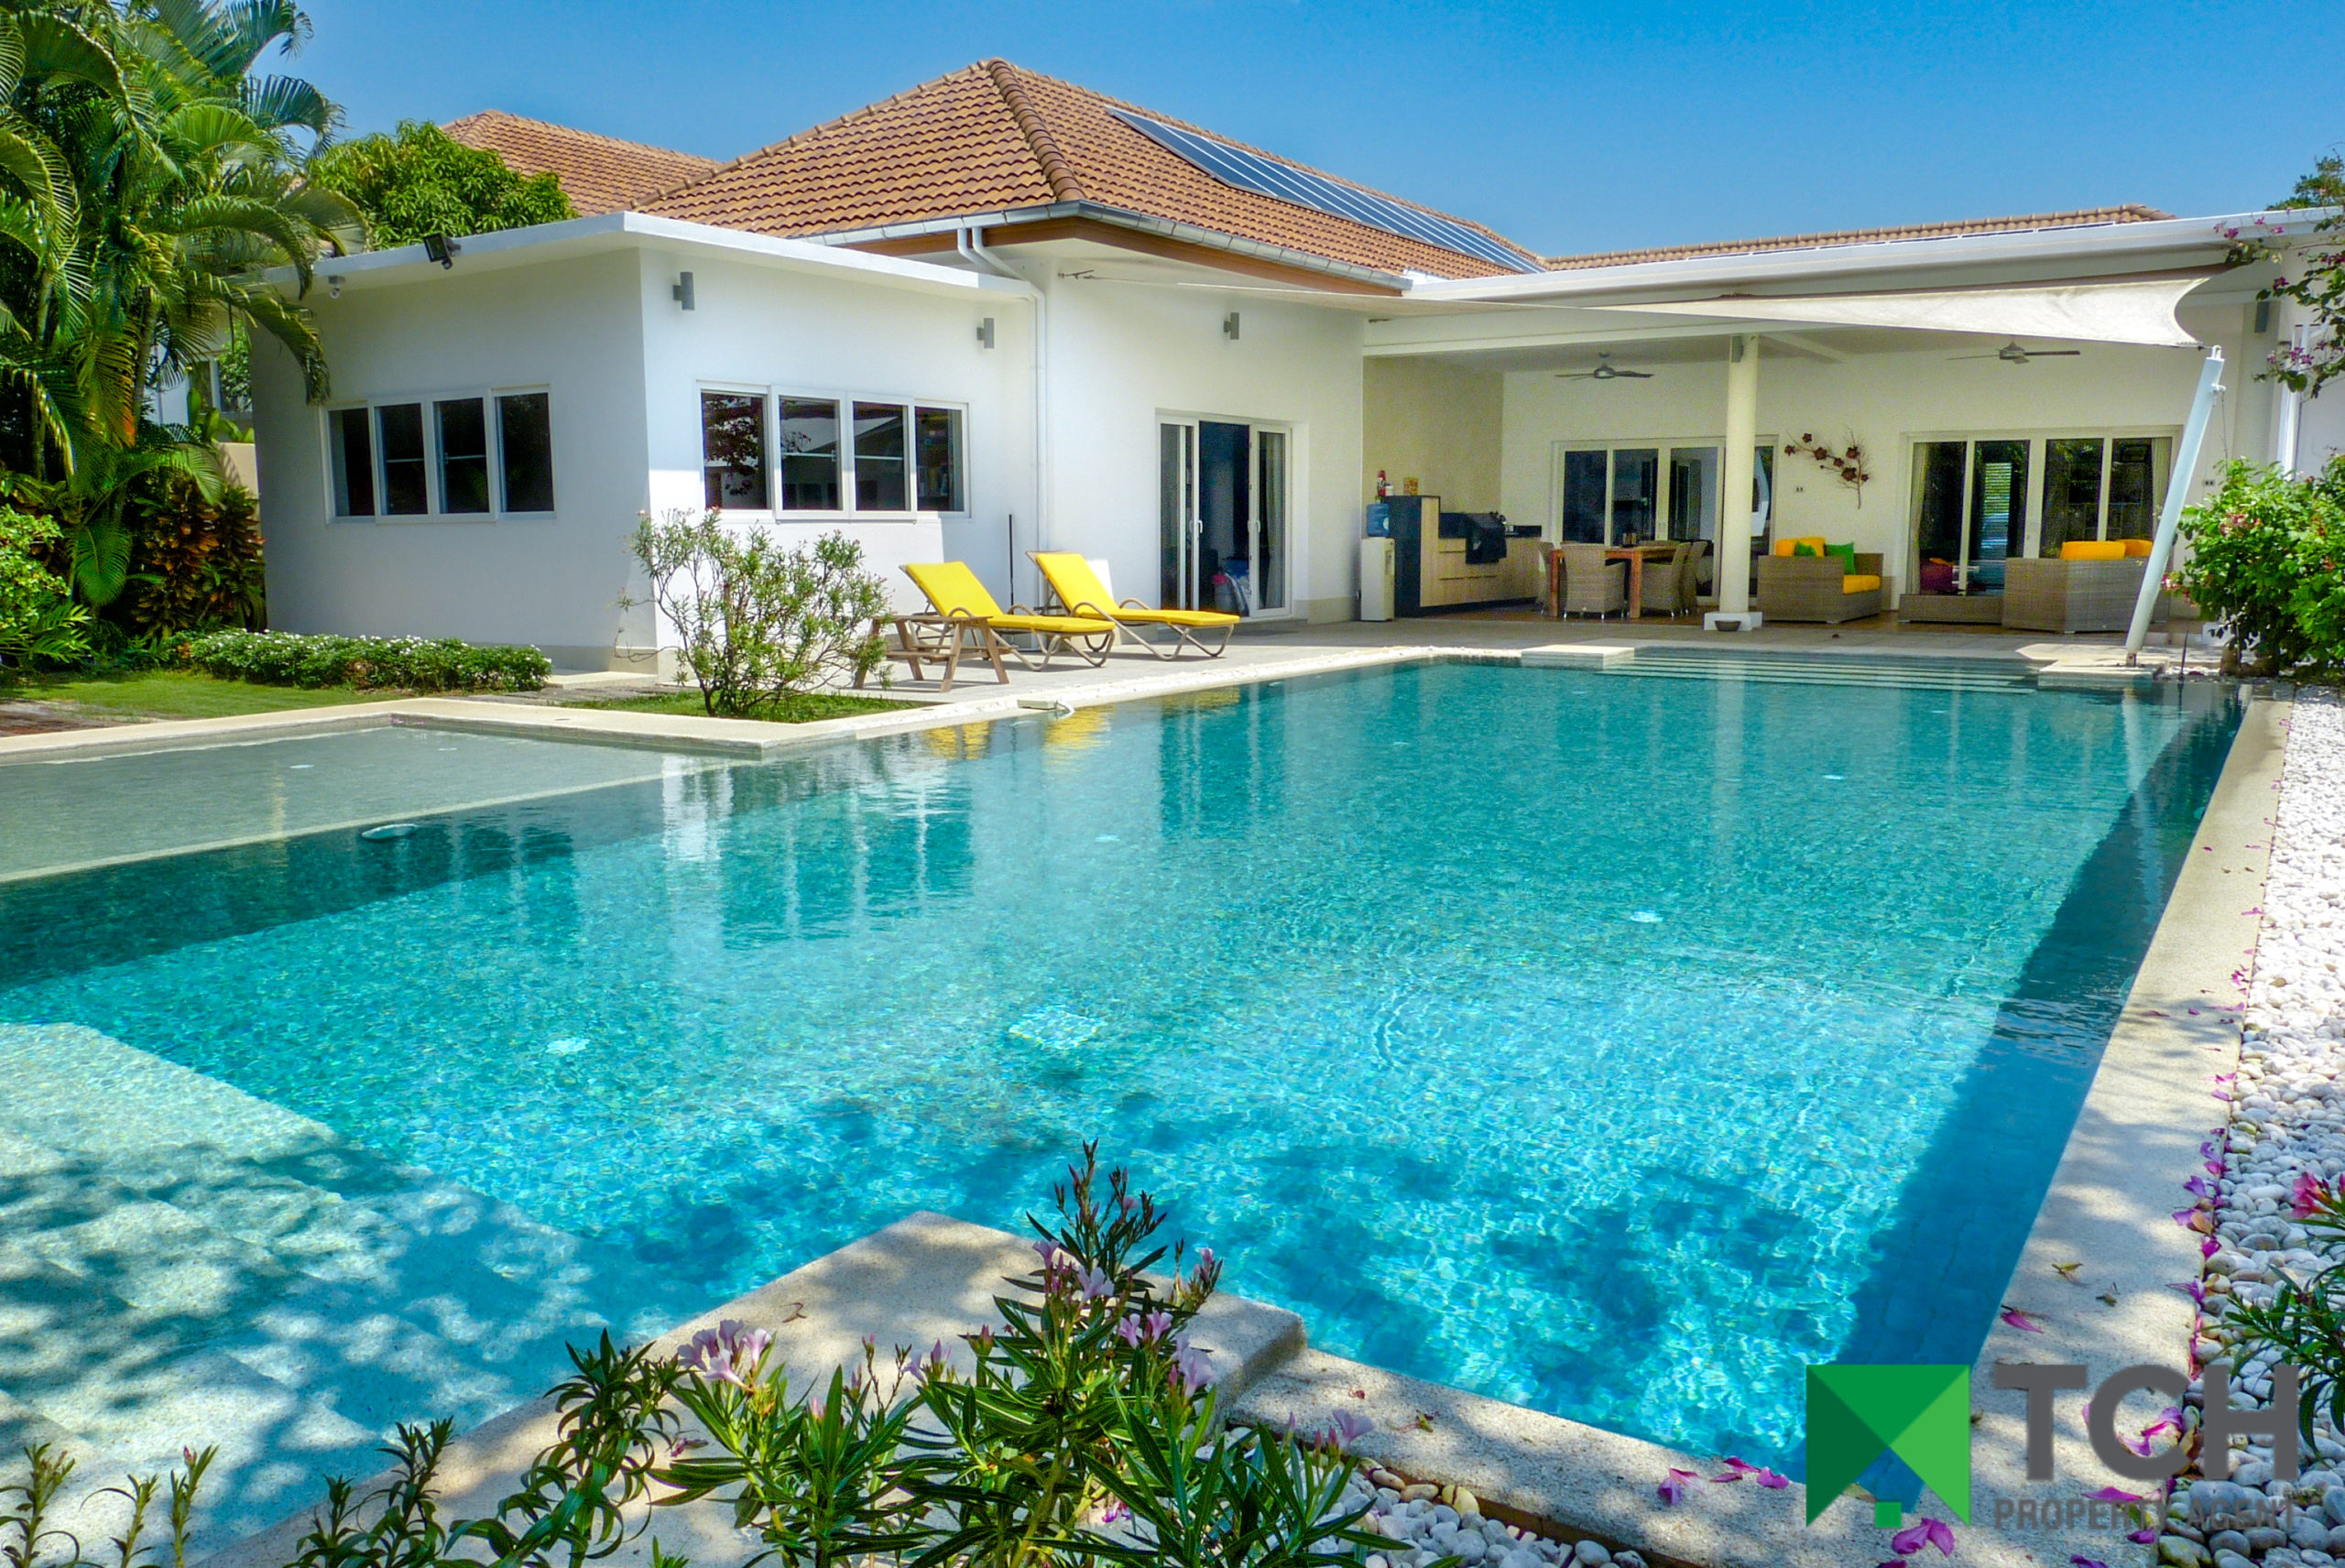 Luxurious Large-Scale Property in Prime Location